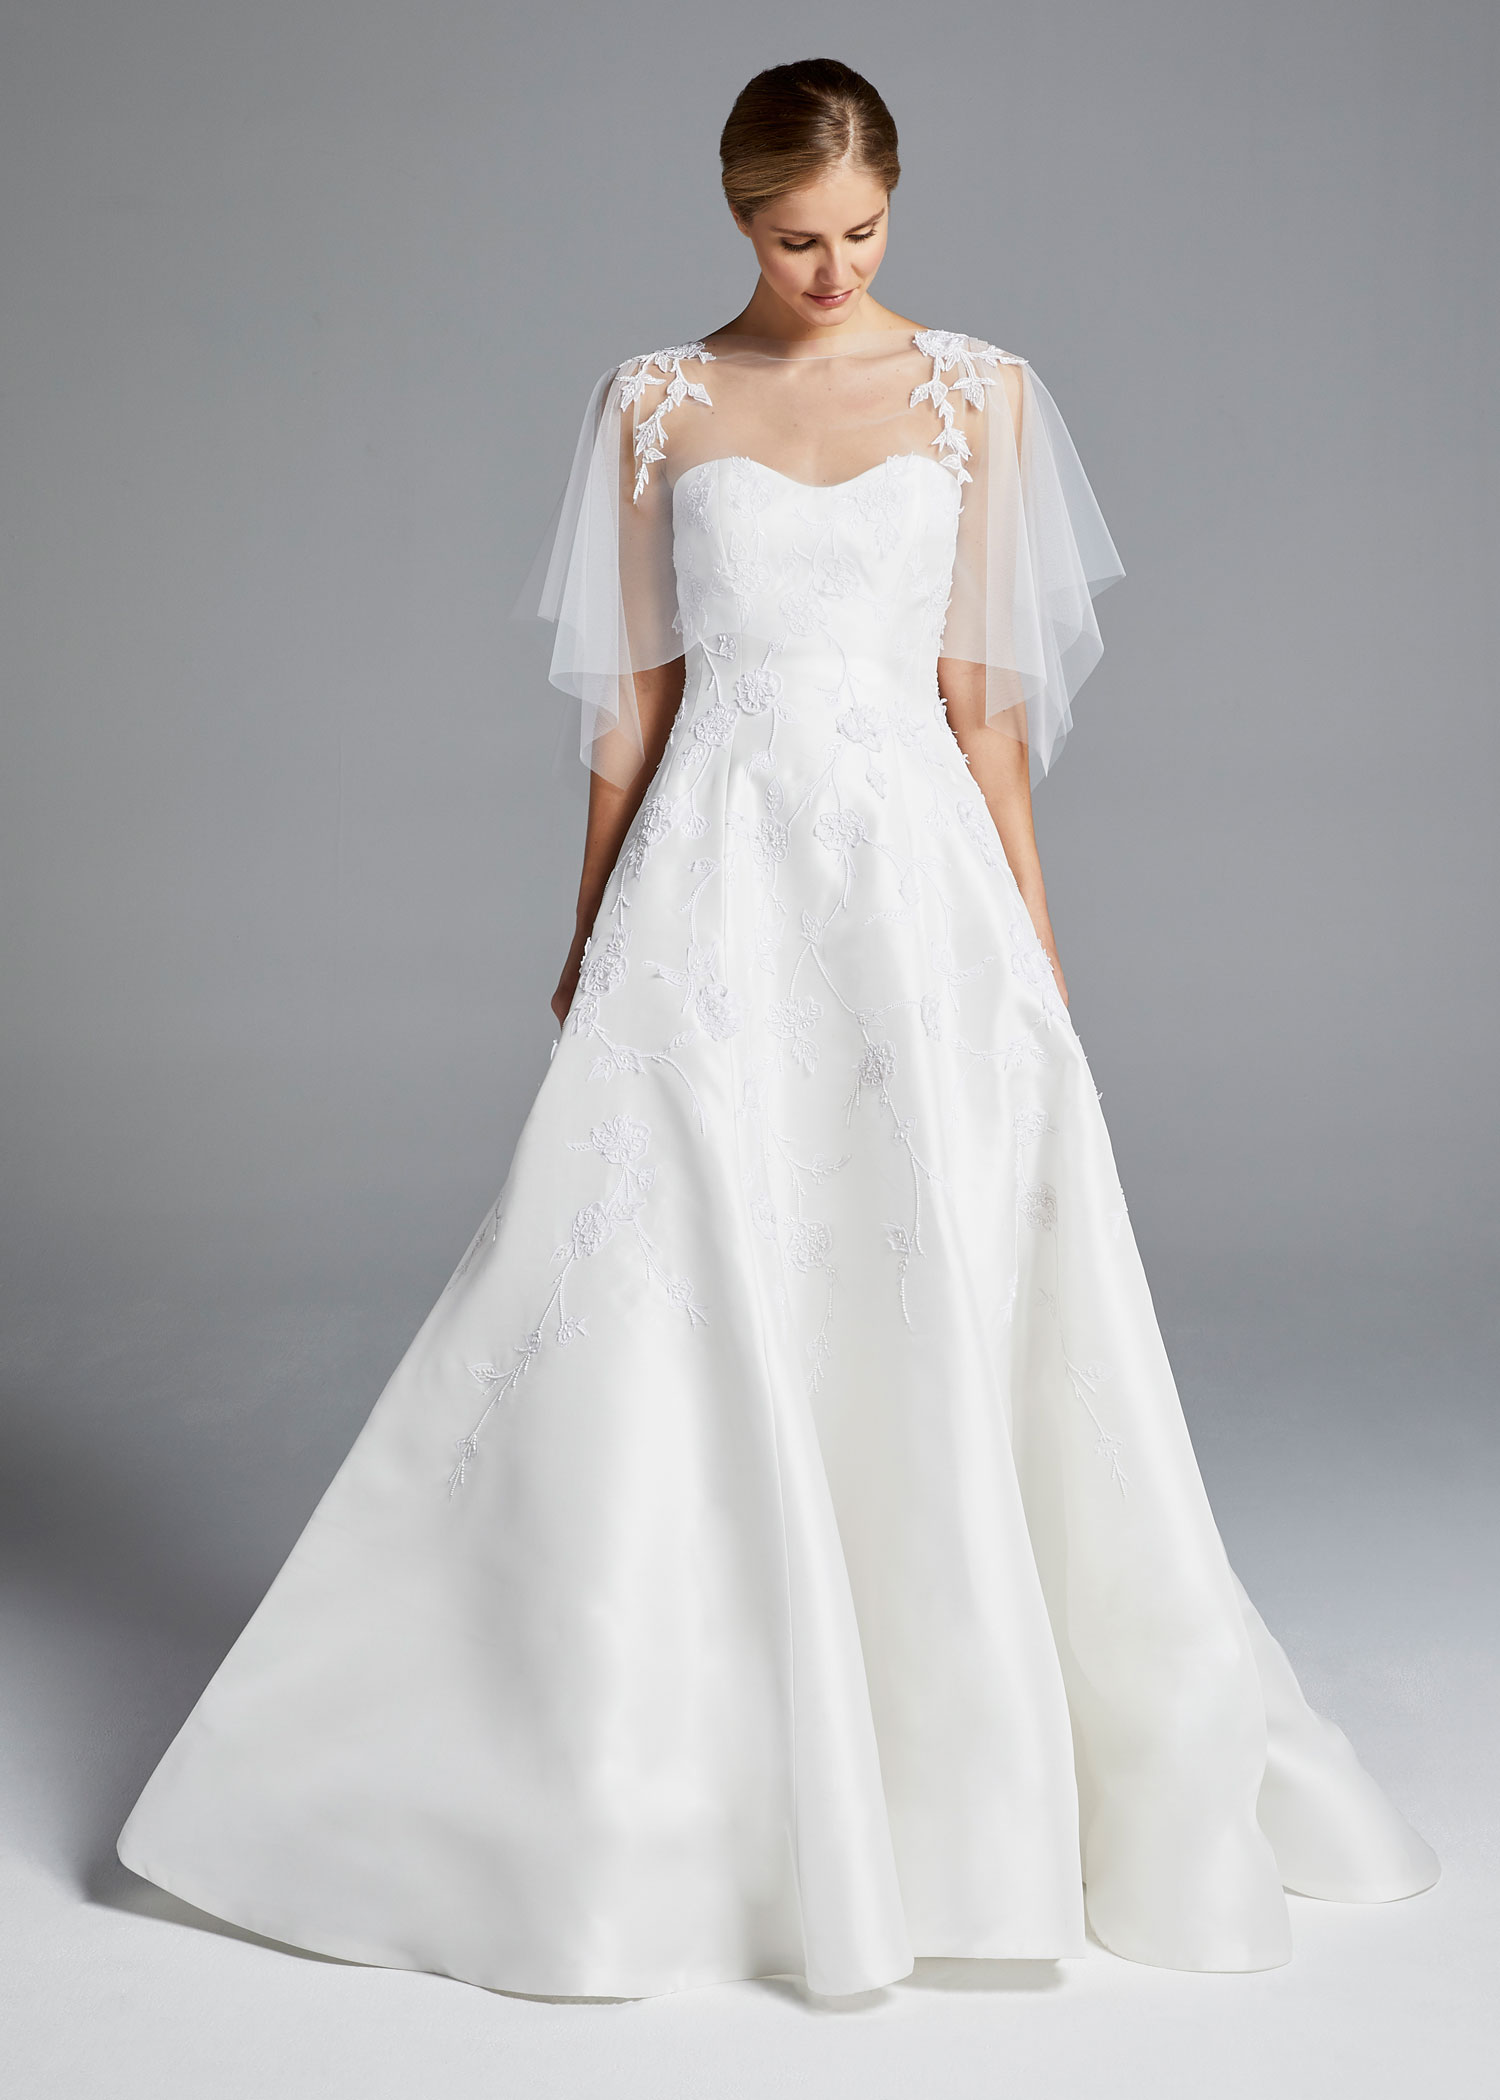 Anne Barge strapless a line ball gown with sheer bolero royal wedding inspired gowns